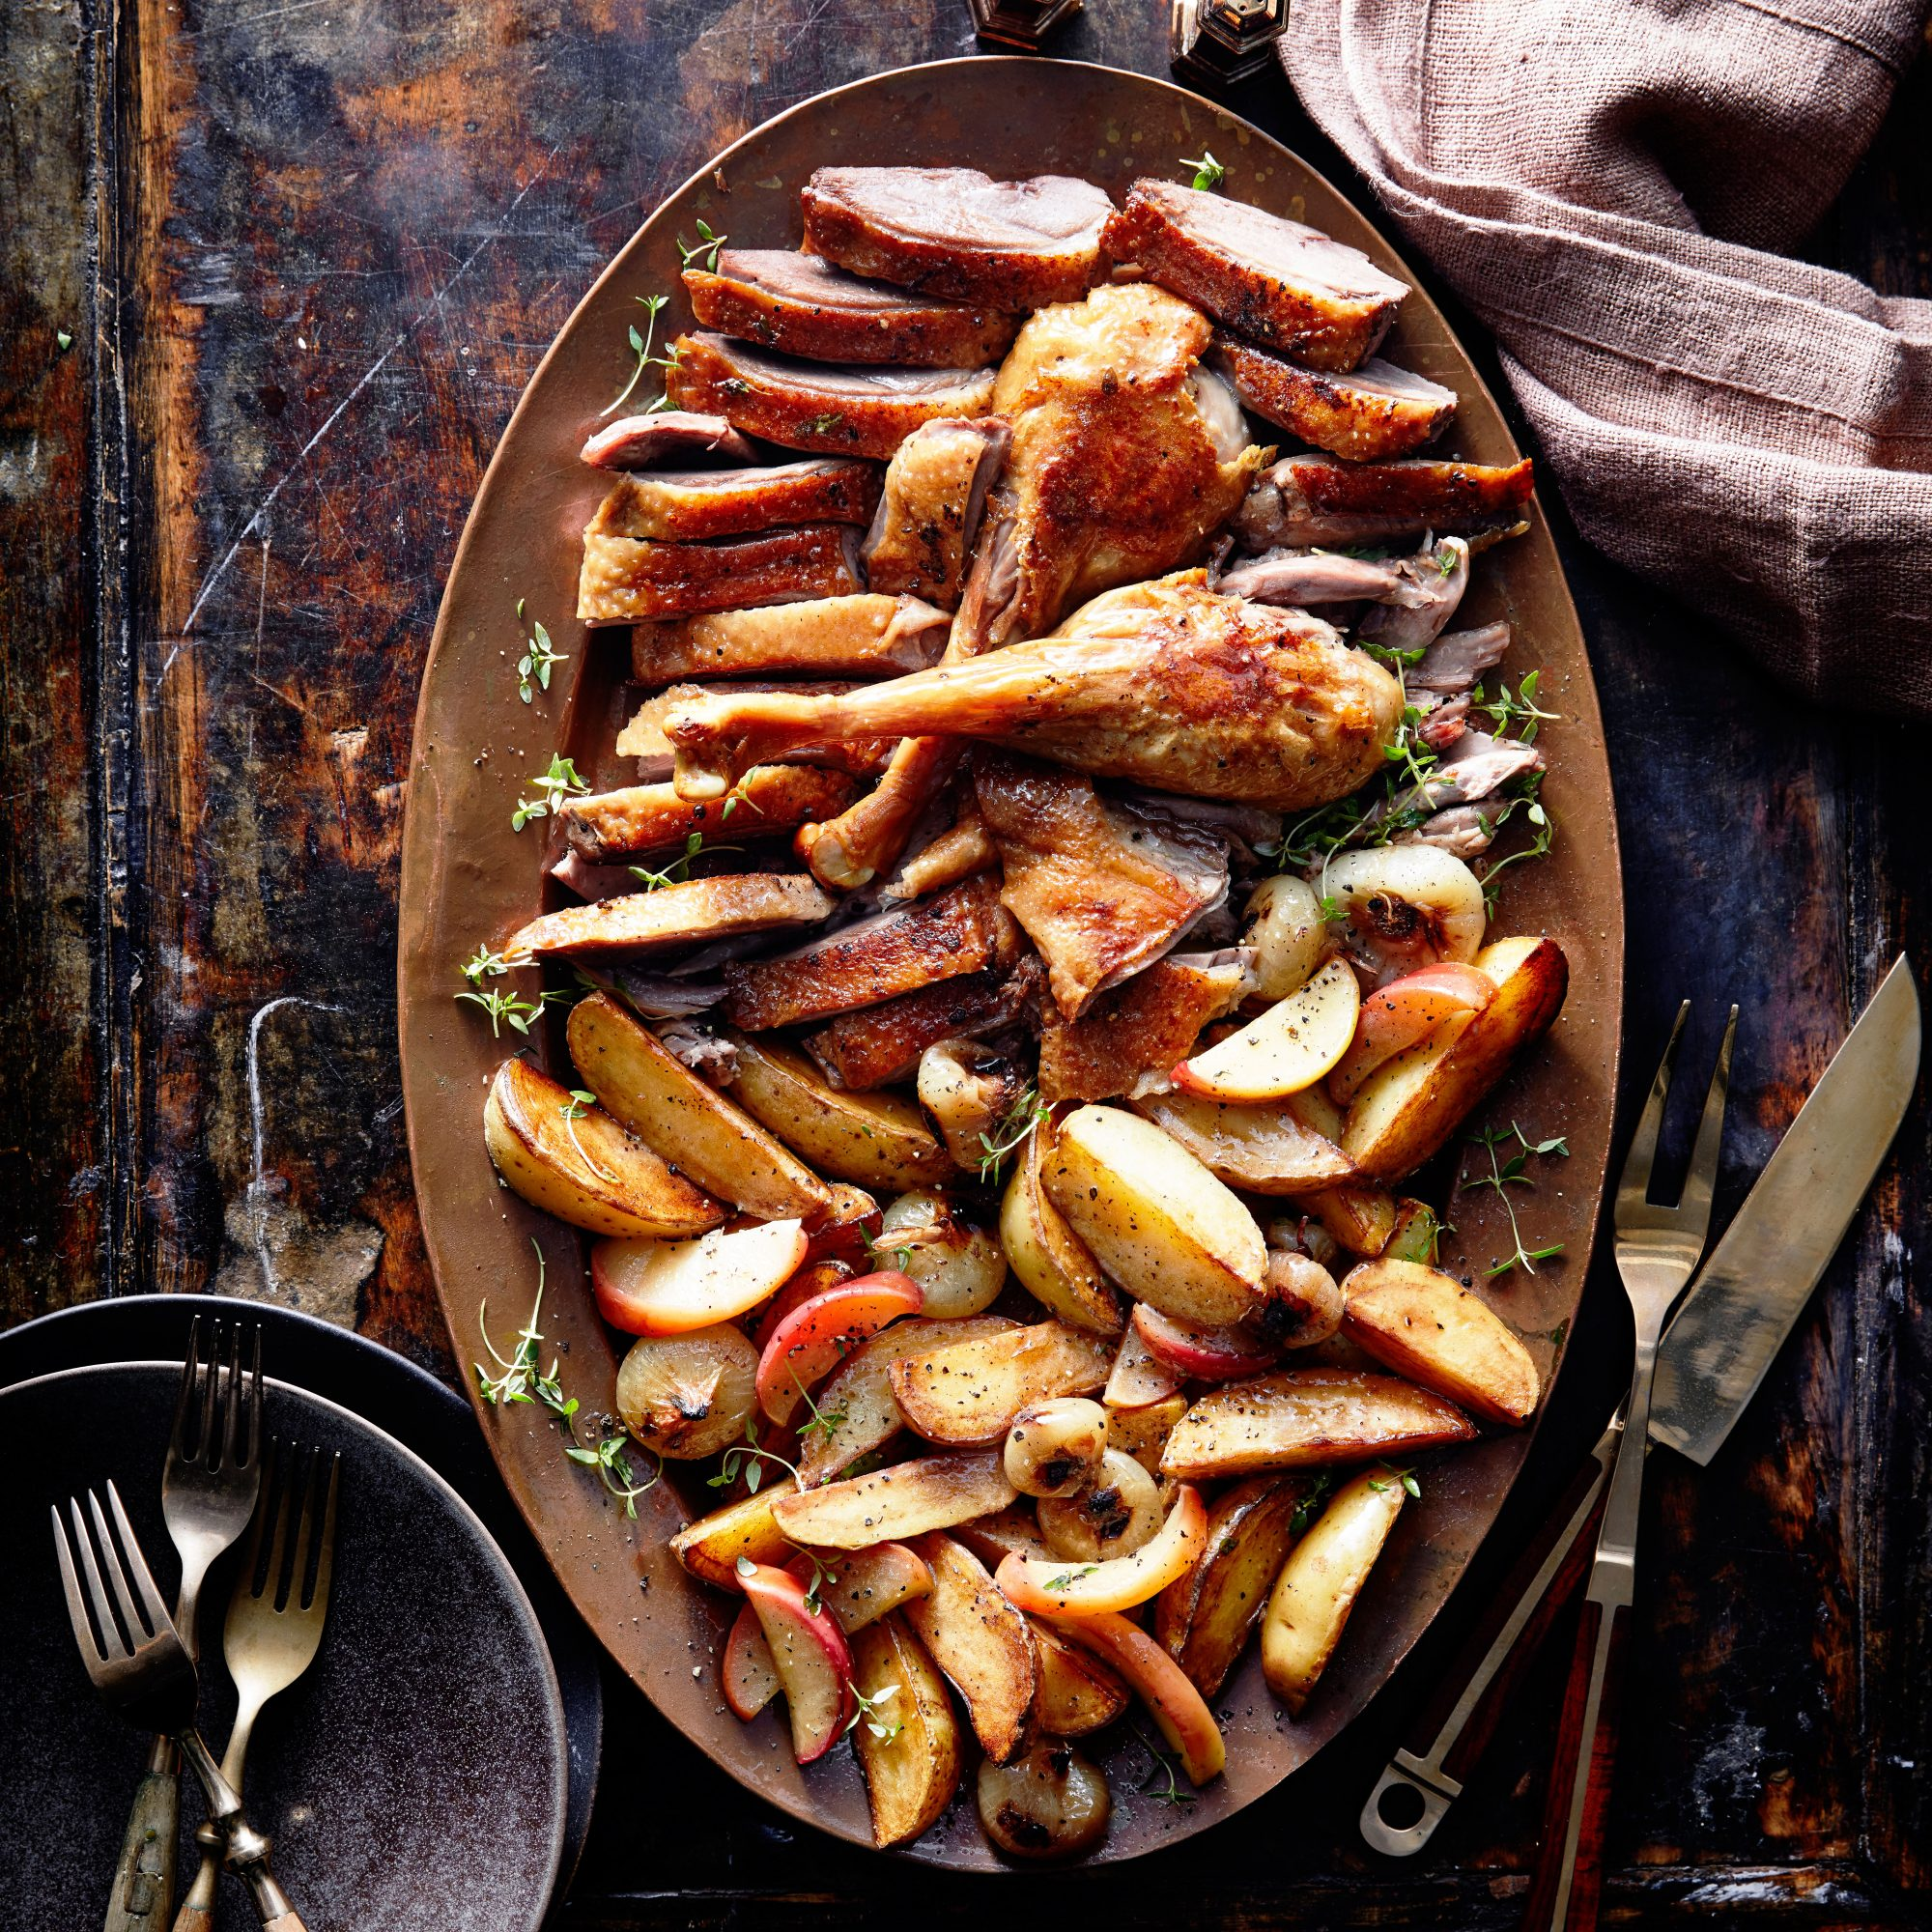 su-Roast Goose with Potatoes, Onions, and Apple Image